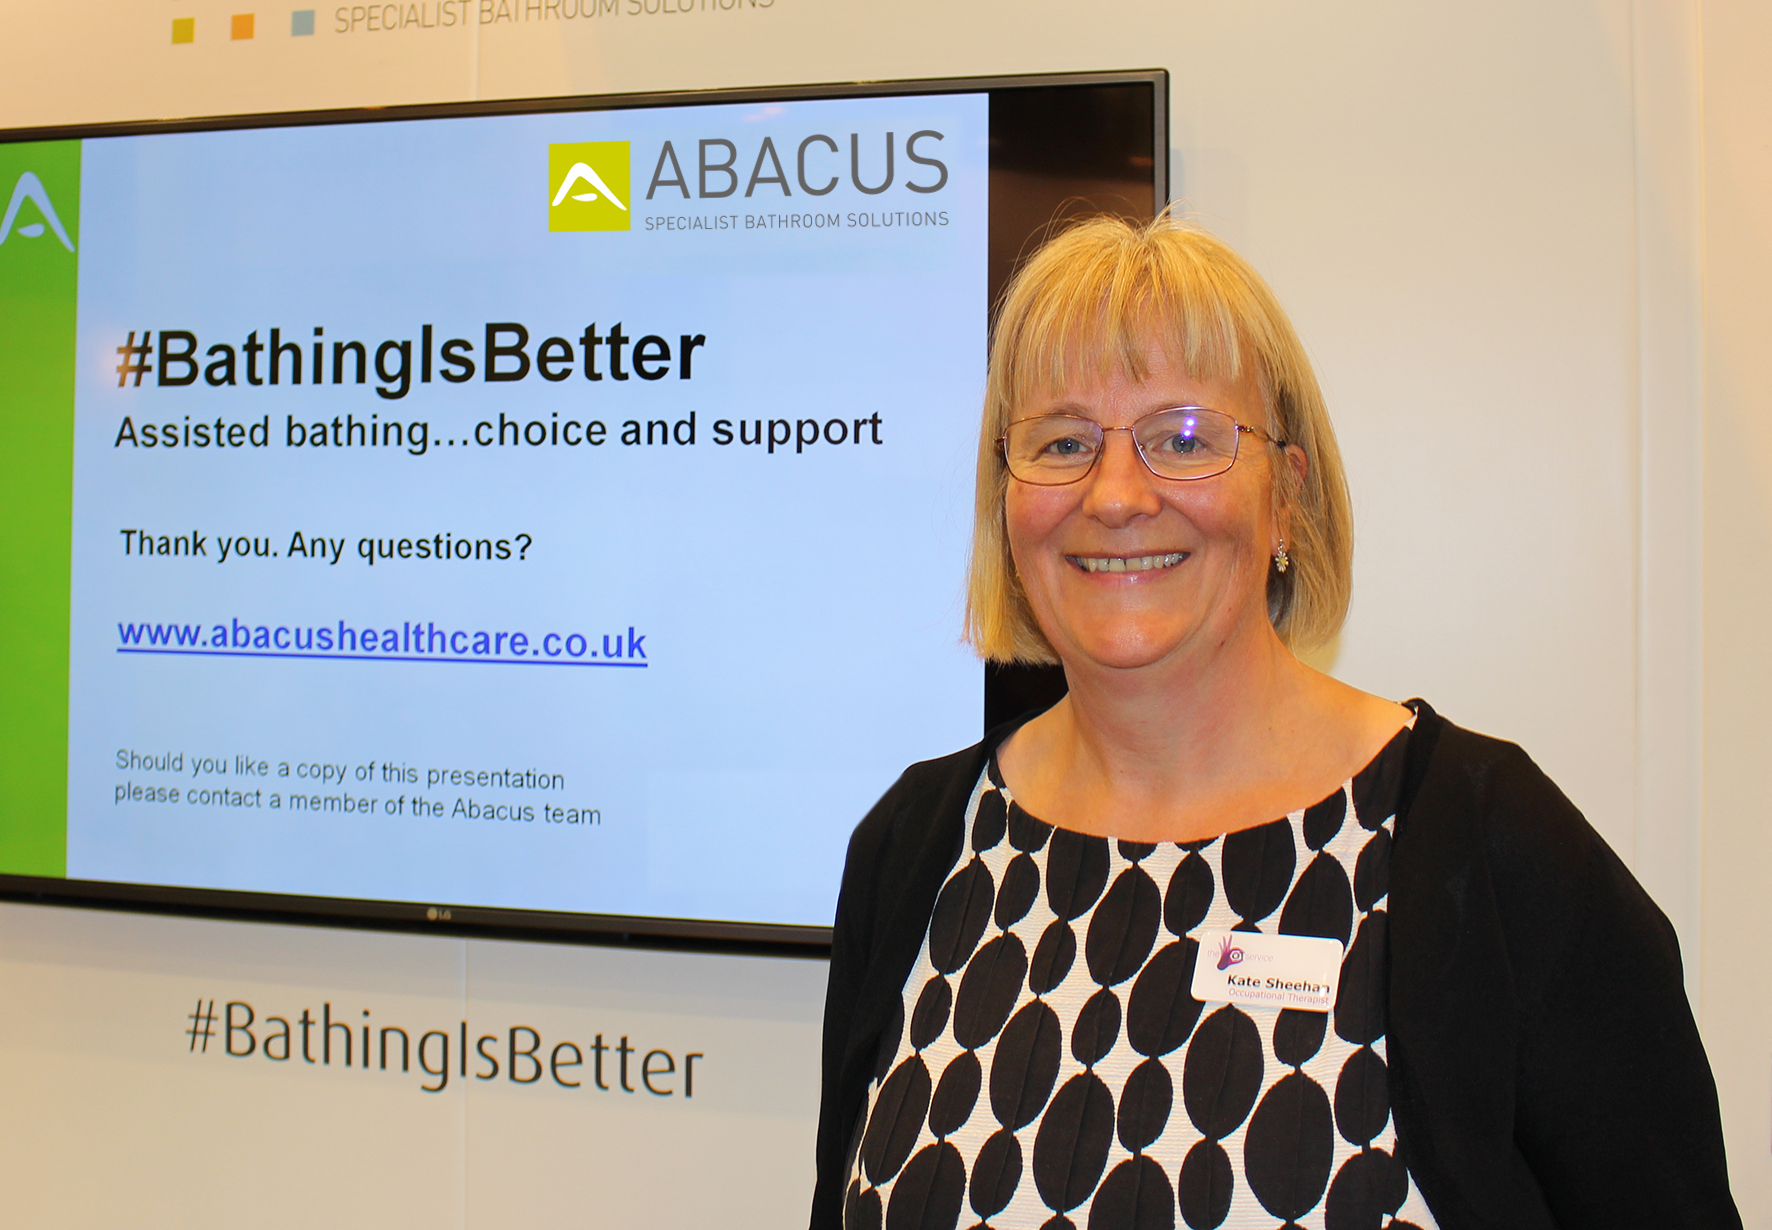 "Respected OT Kate Sheehan to present ""Bathing is Better"" seminars with Abacus Specialist Bathroom Solutions at OT Show"